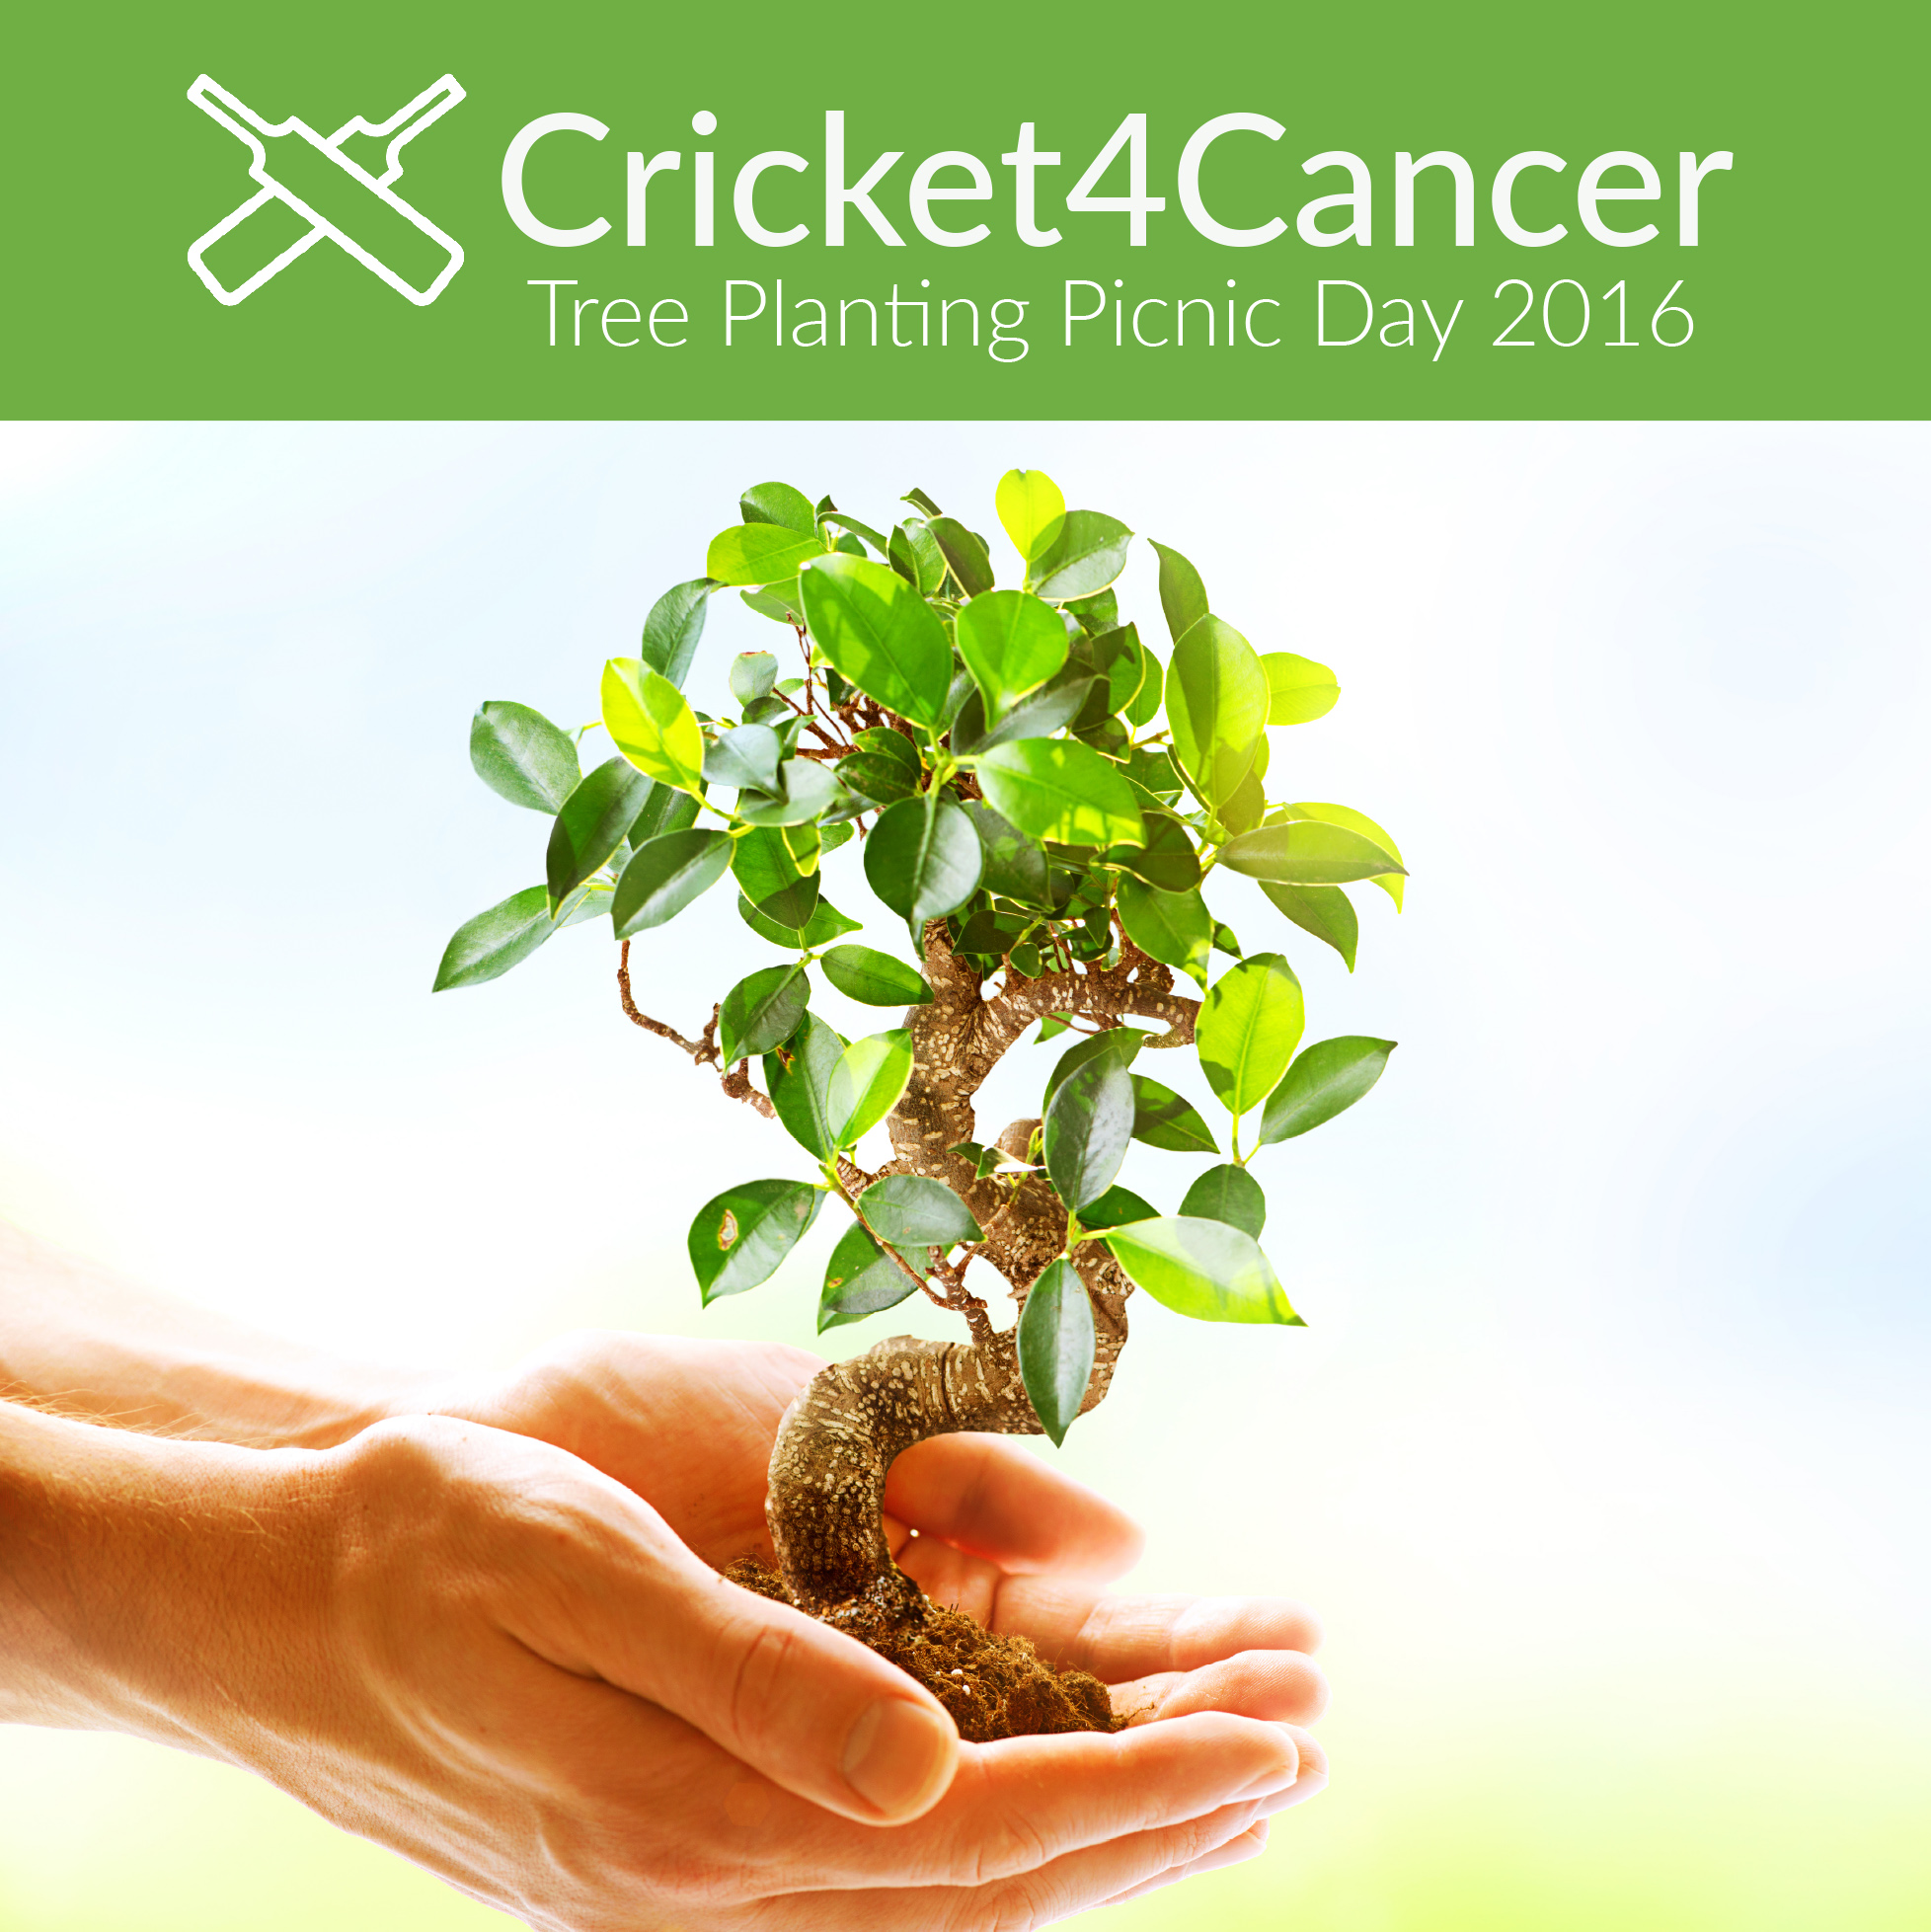 Cricket4Cancer tree planting